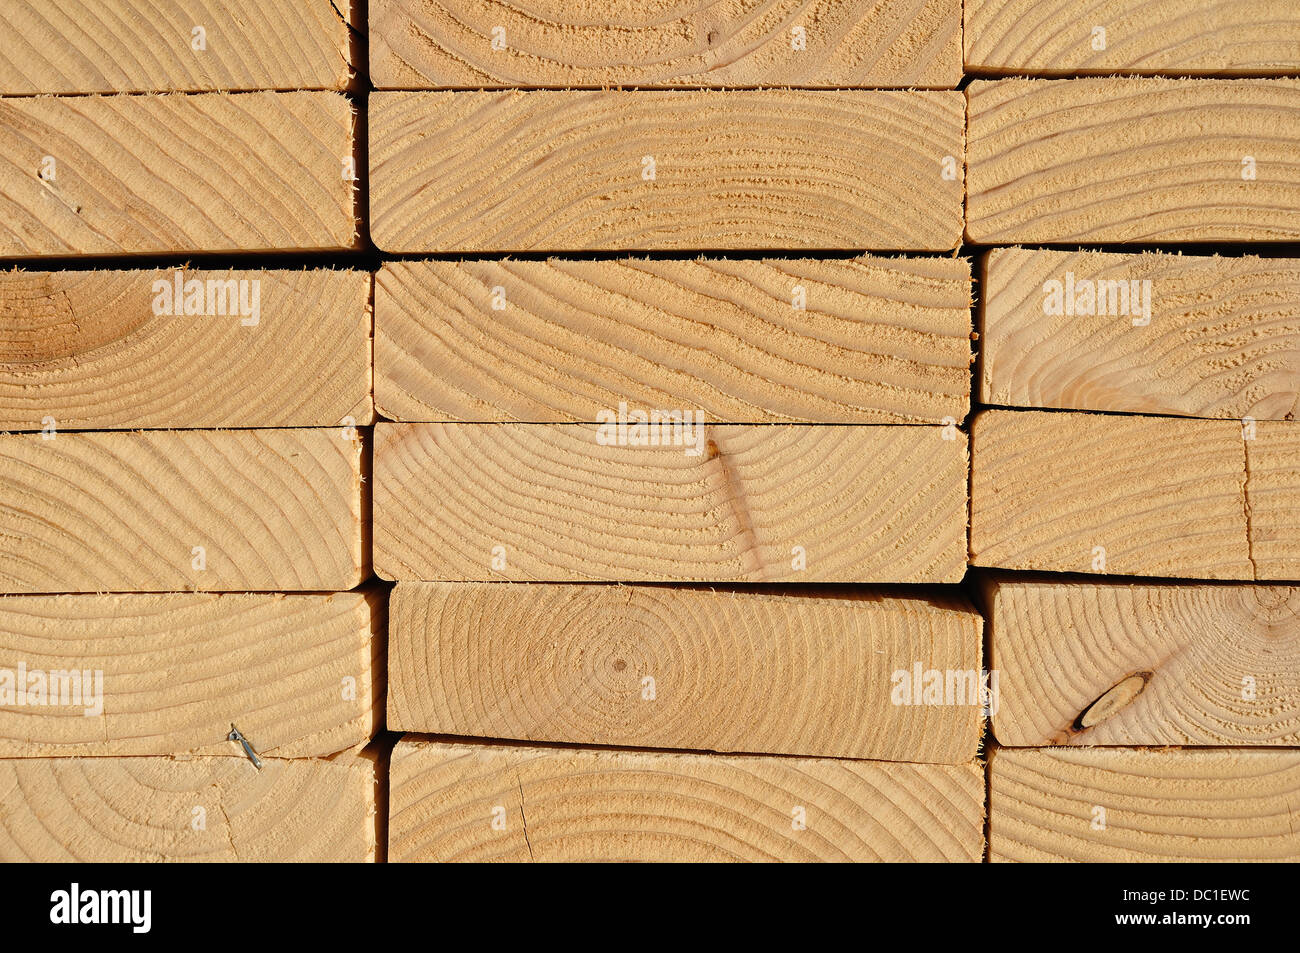 Close up of timber planks for construction - Stock Image